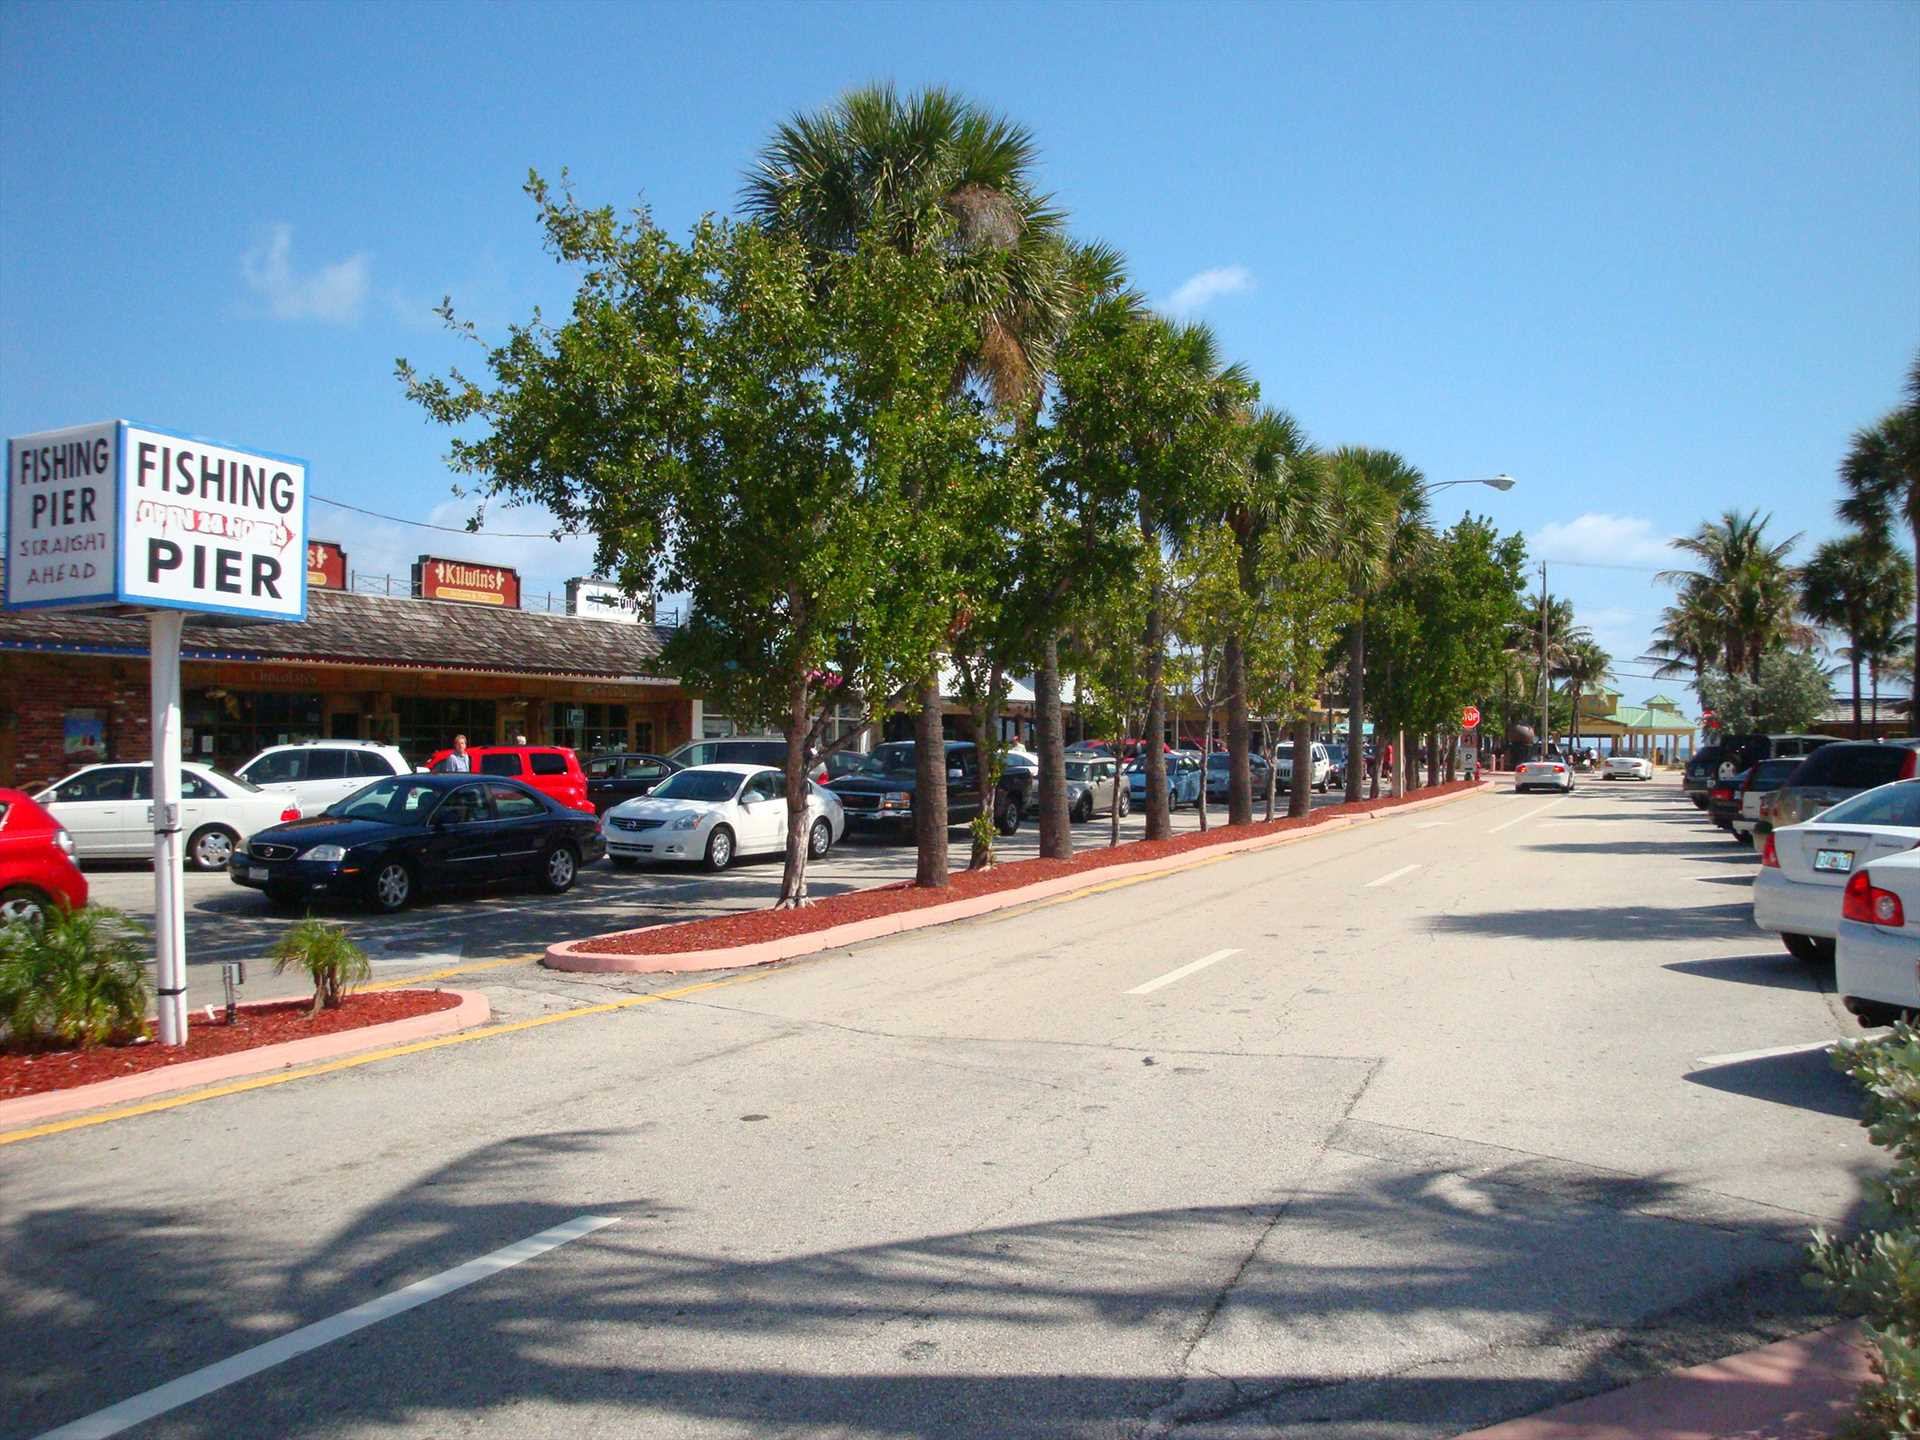 Beach boulevard is lined with reataurants and shops.